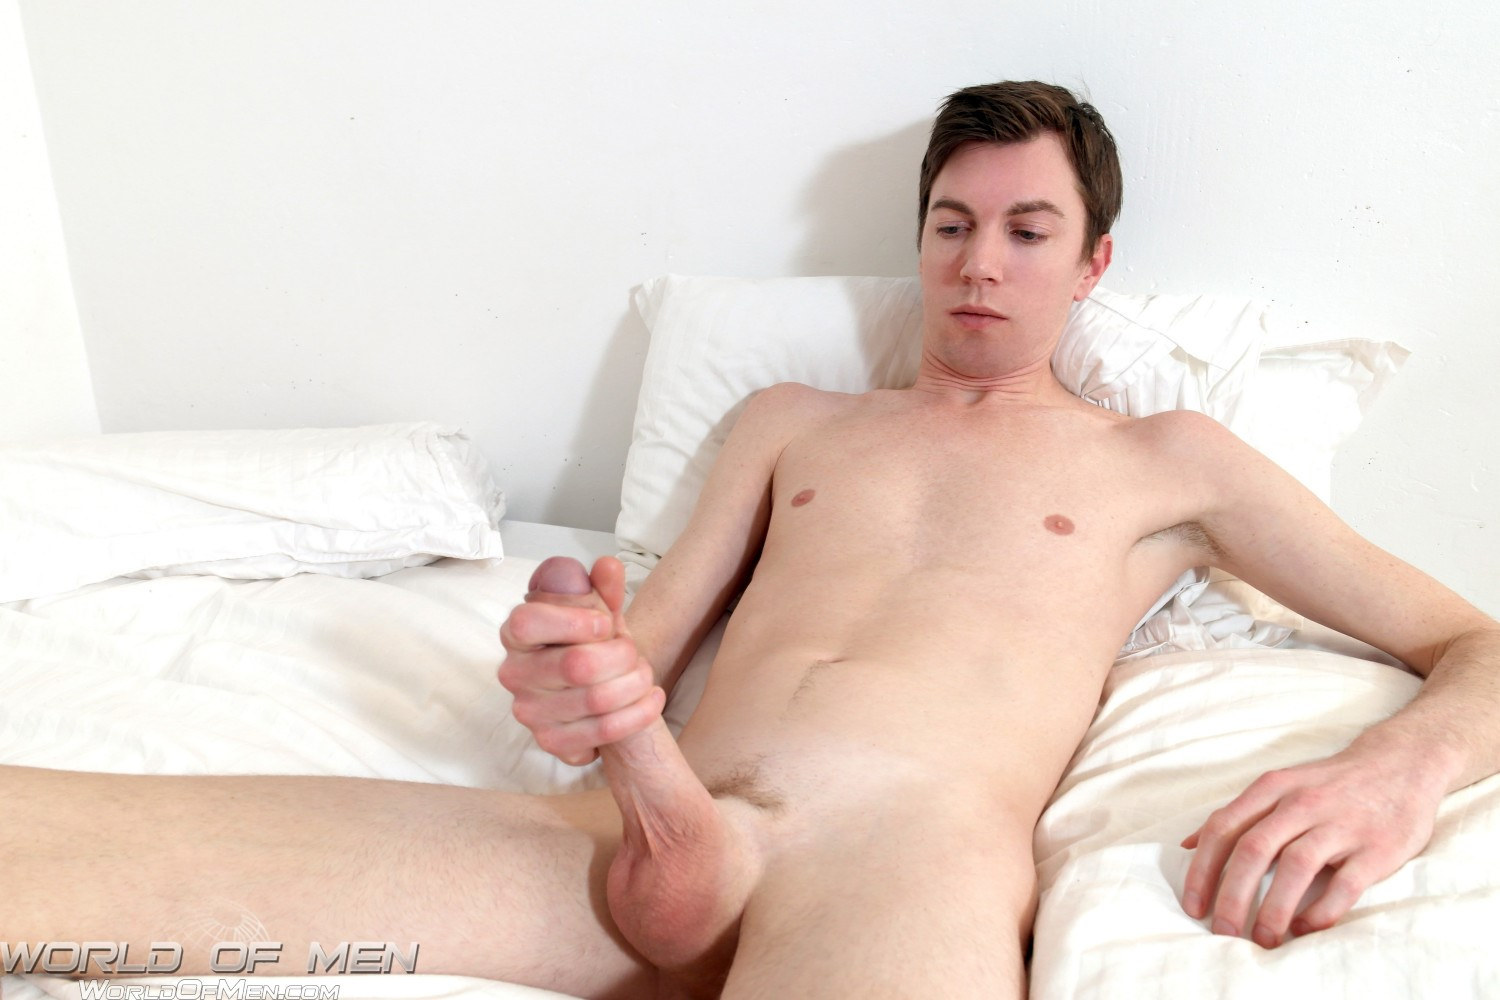 World of Men Bjorn Swedish Twink With A Big Uncut Cock Amateur Gay Porn 09 Swedish Twink Fingers His Ass And Jerks His Big Uncut Cock